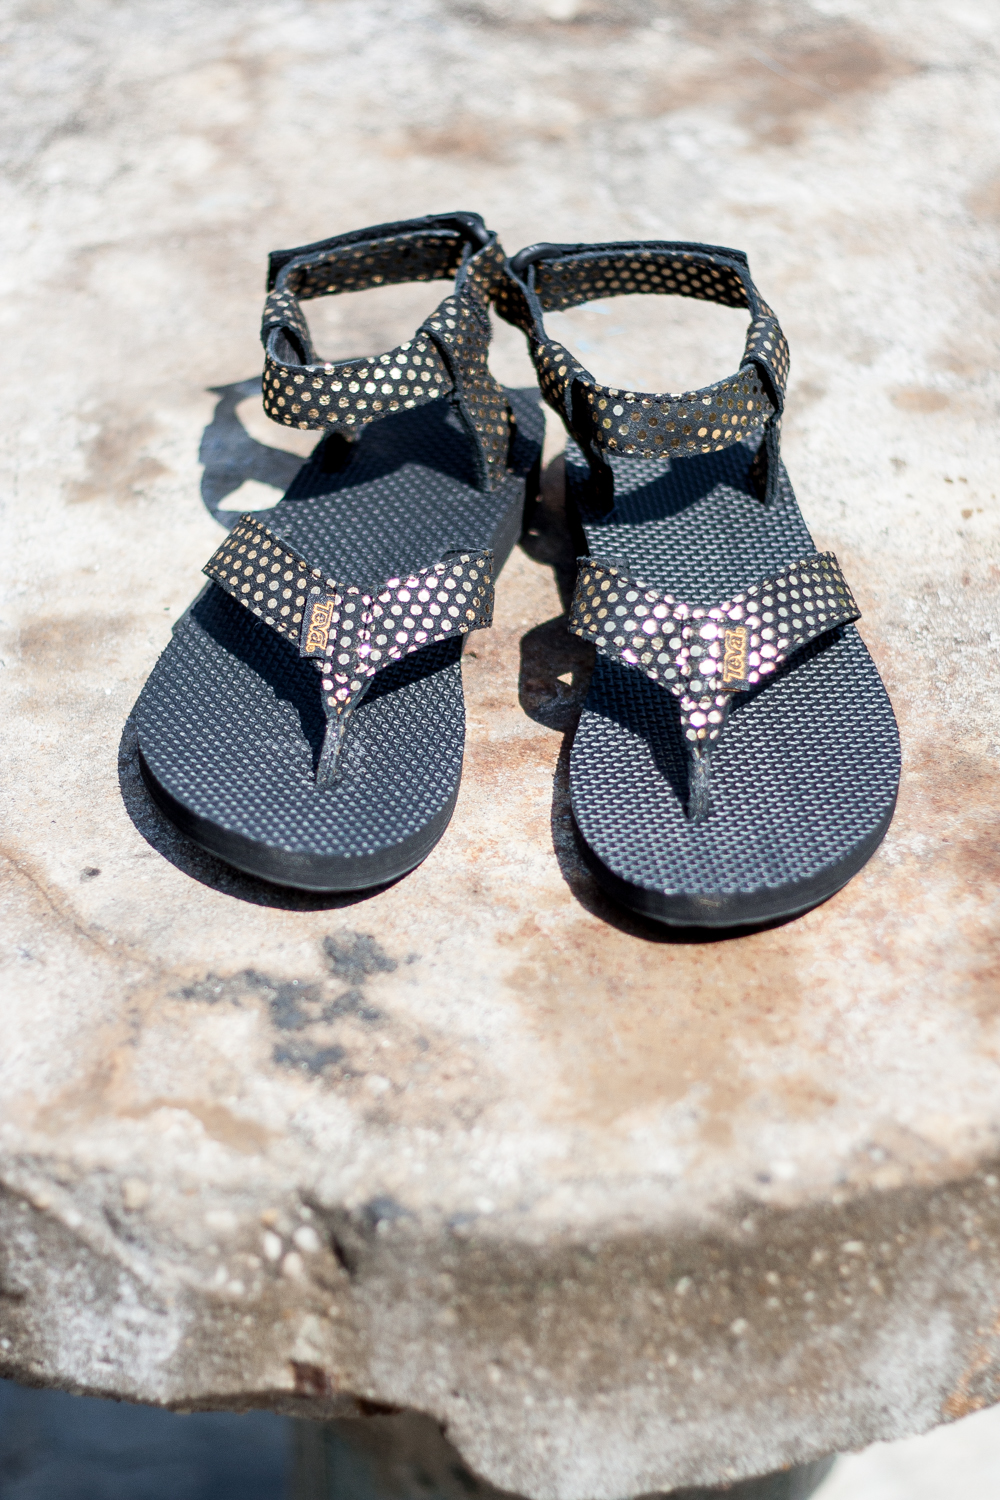 Teva Originals sandals